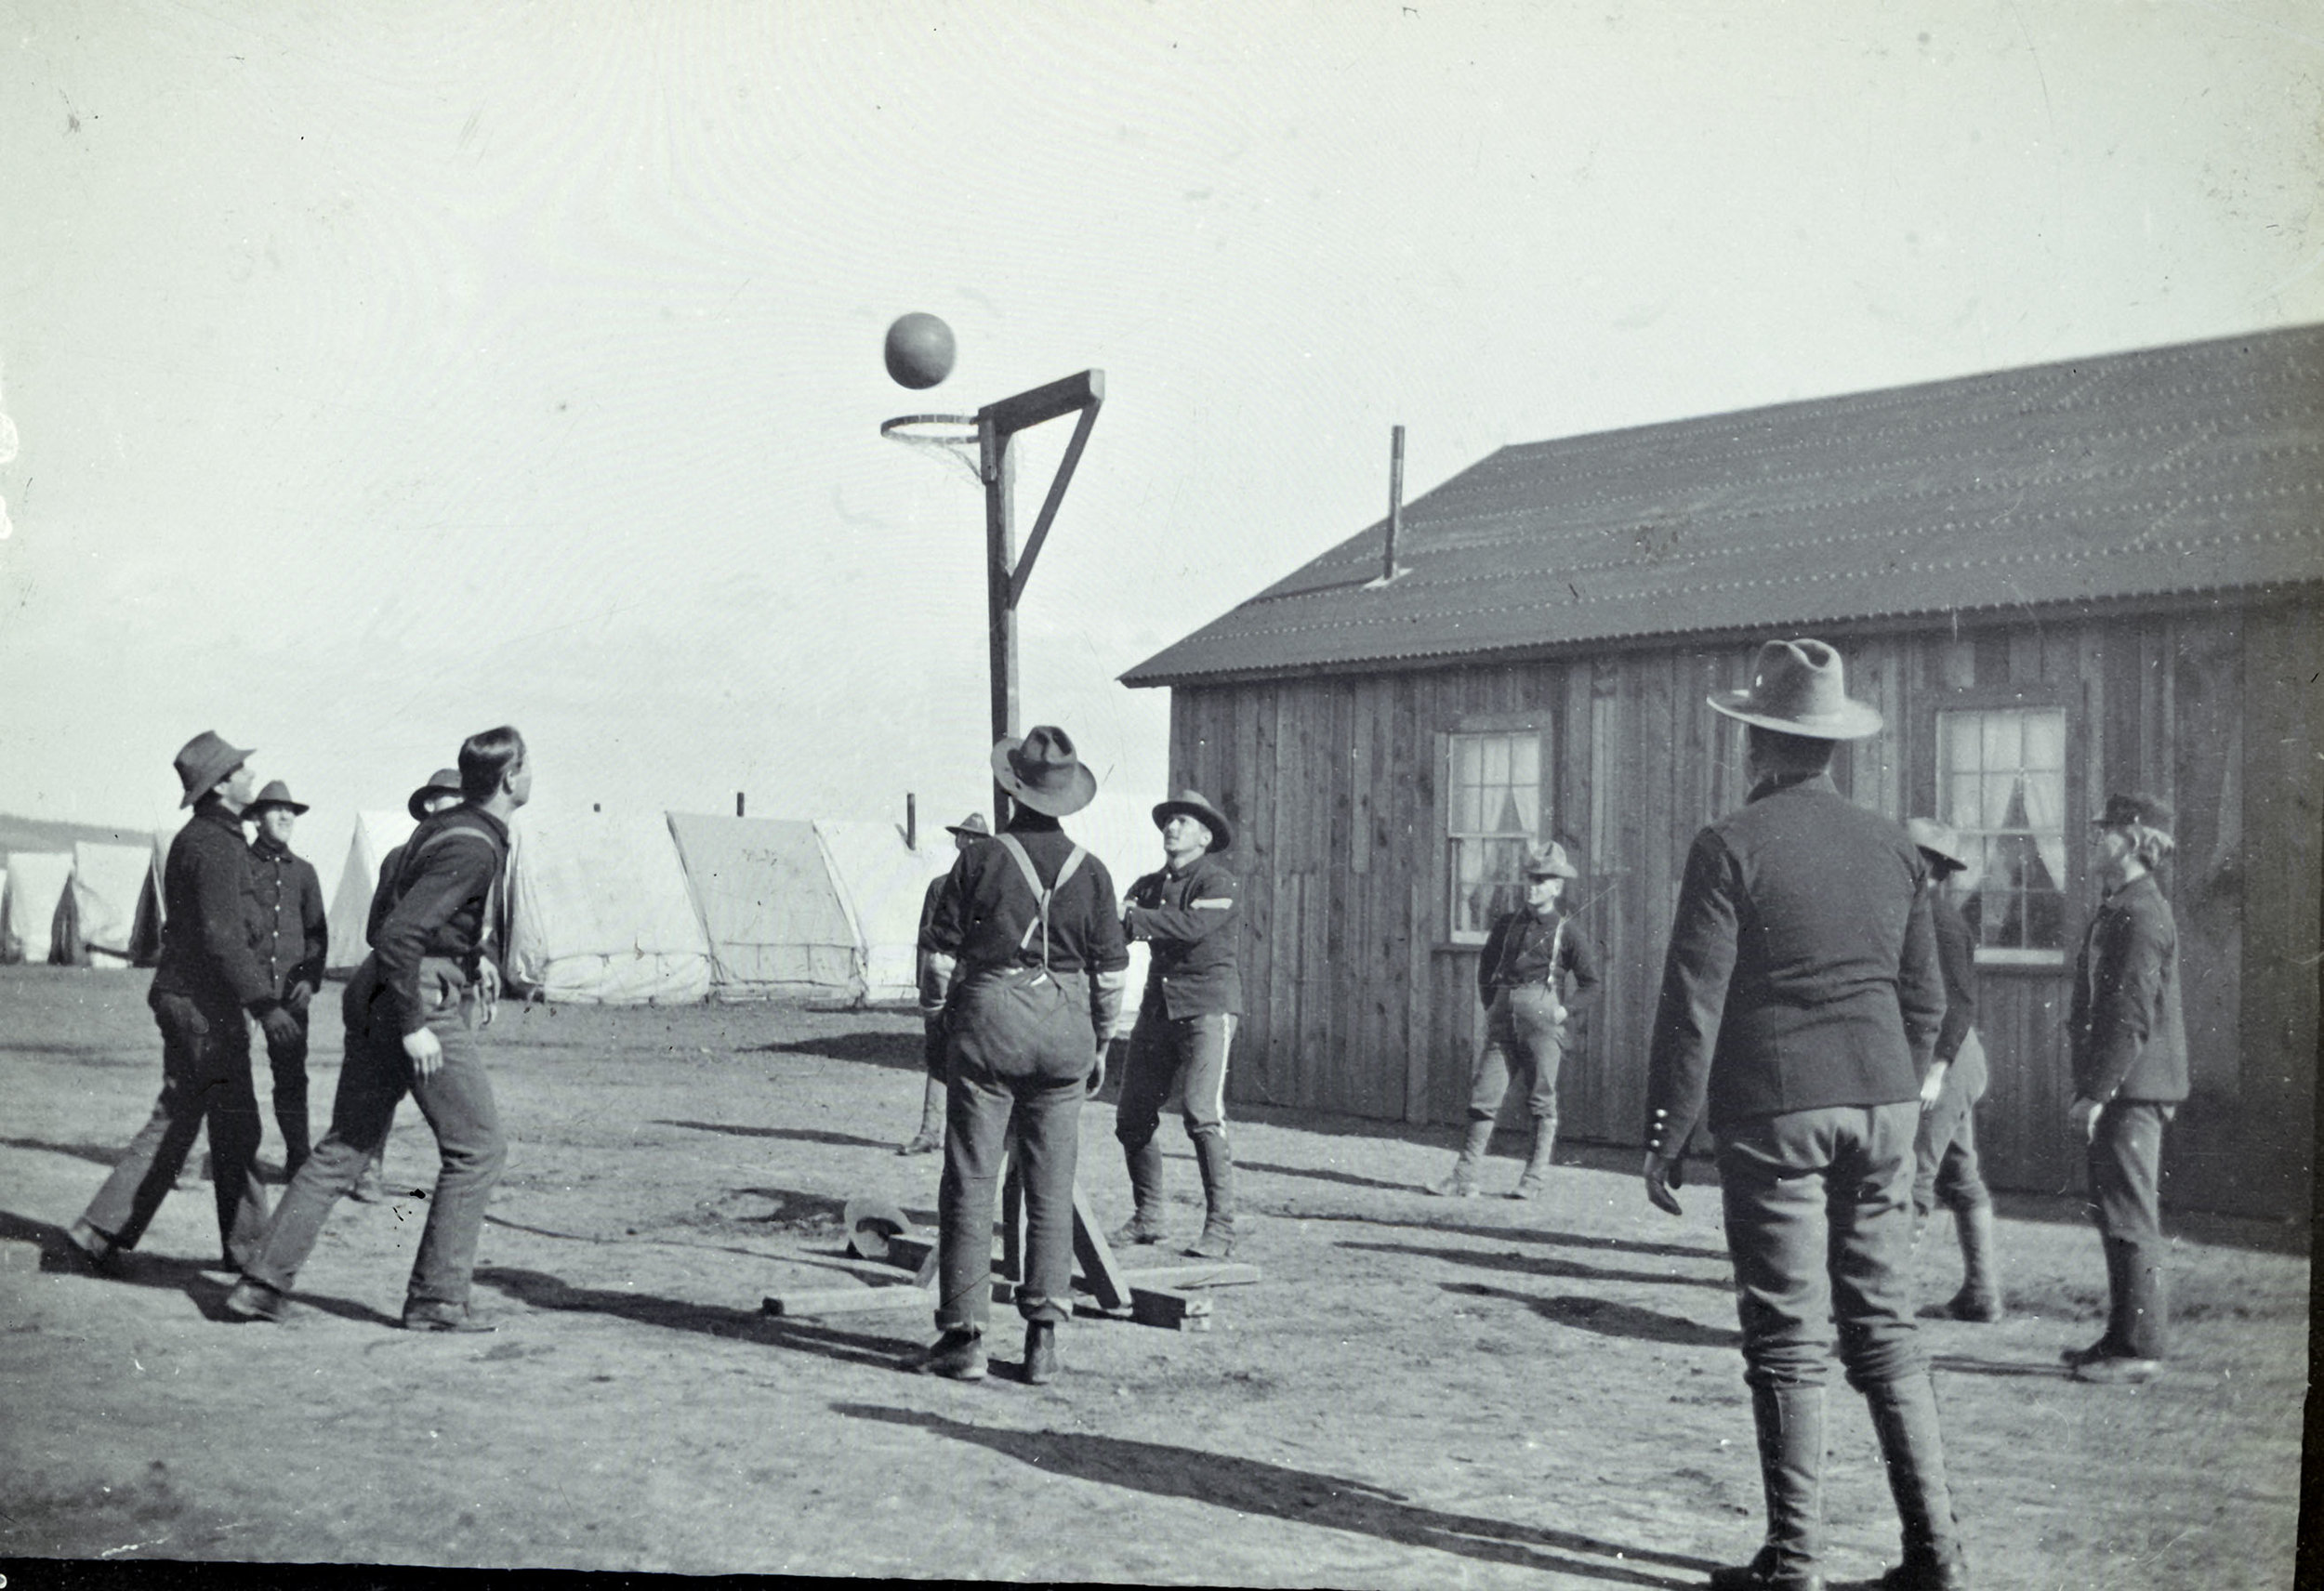 BPQ_ls_138: Soldiers playing basketball at mobilization camp for Spanish-American War, ca. 1896-1898. Note the lack of a backboard. Borough President Queens Collection, NYC Municipal Archives.